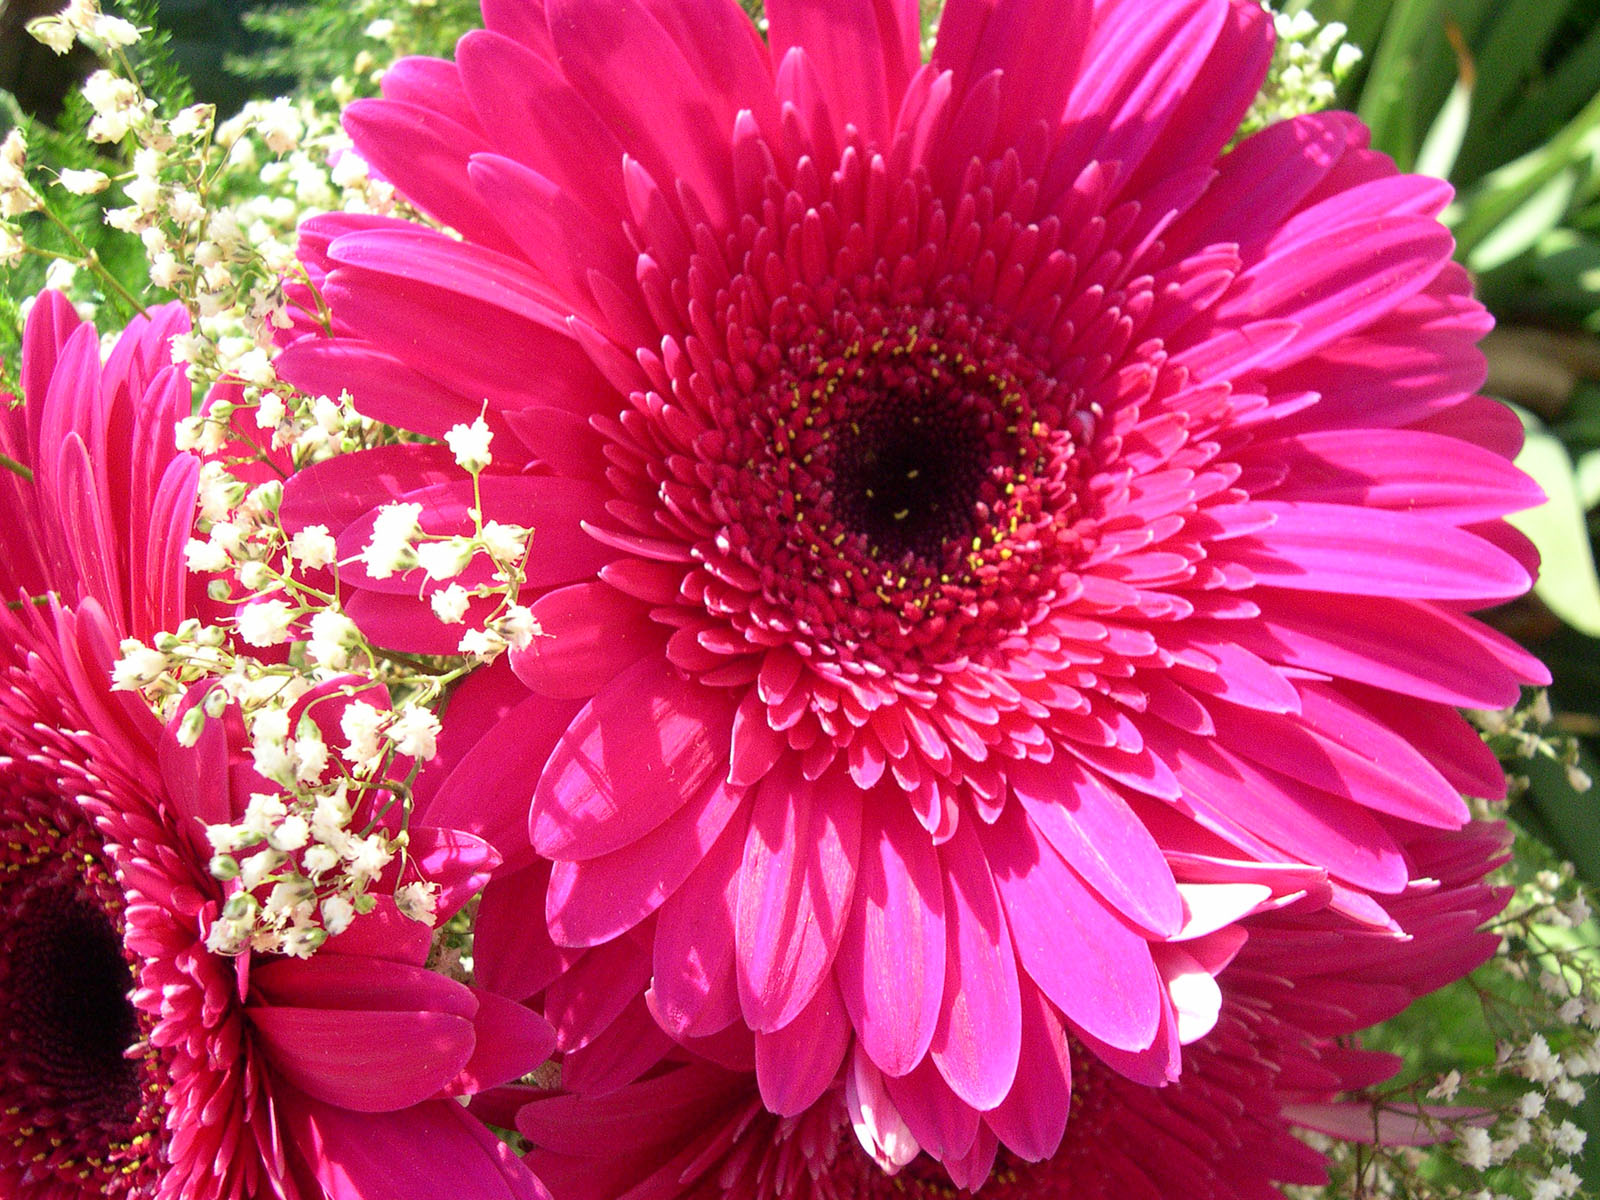 favorite flowers gerbera flowers google search gerberas flower gerberas google beautiful. Black Bedroom Furniture Sets. Home Design Ideas